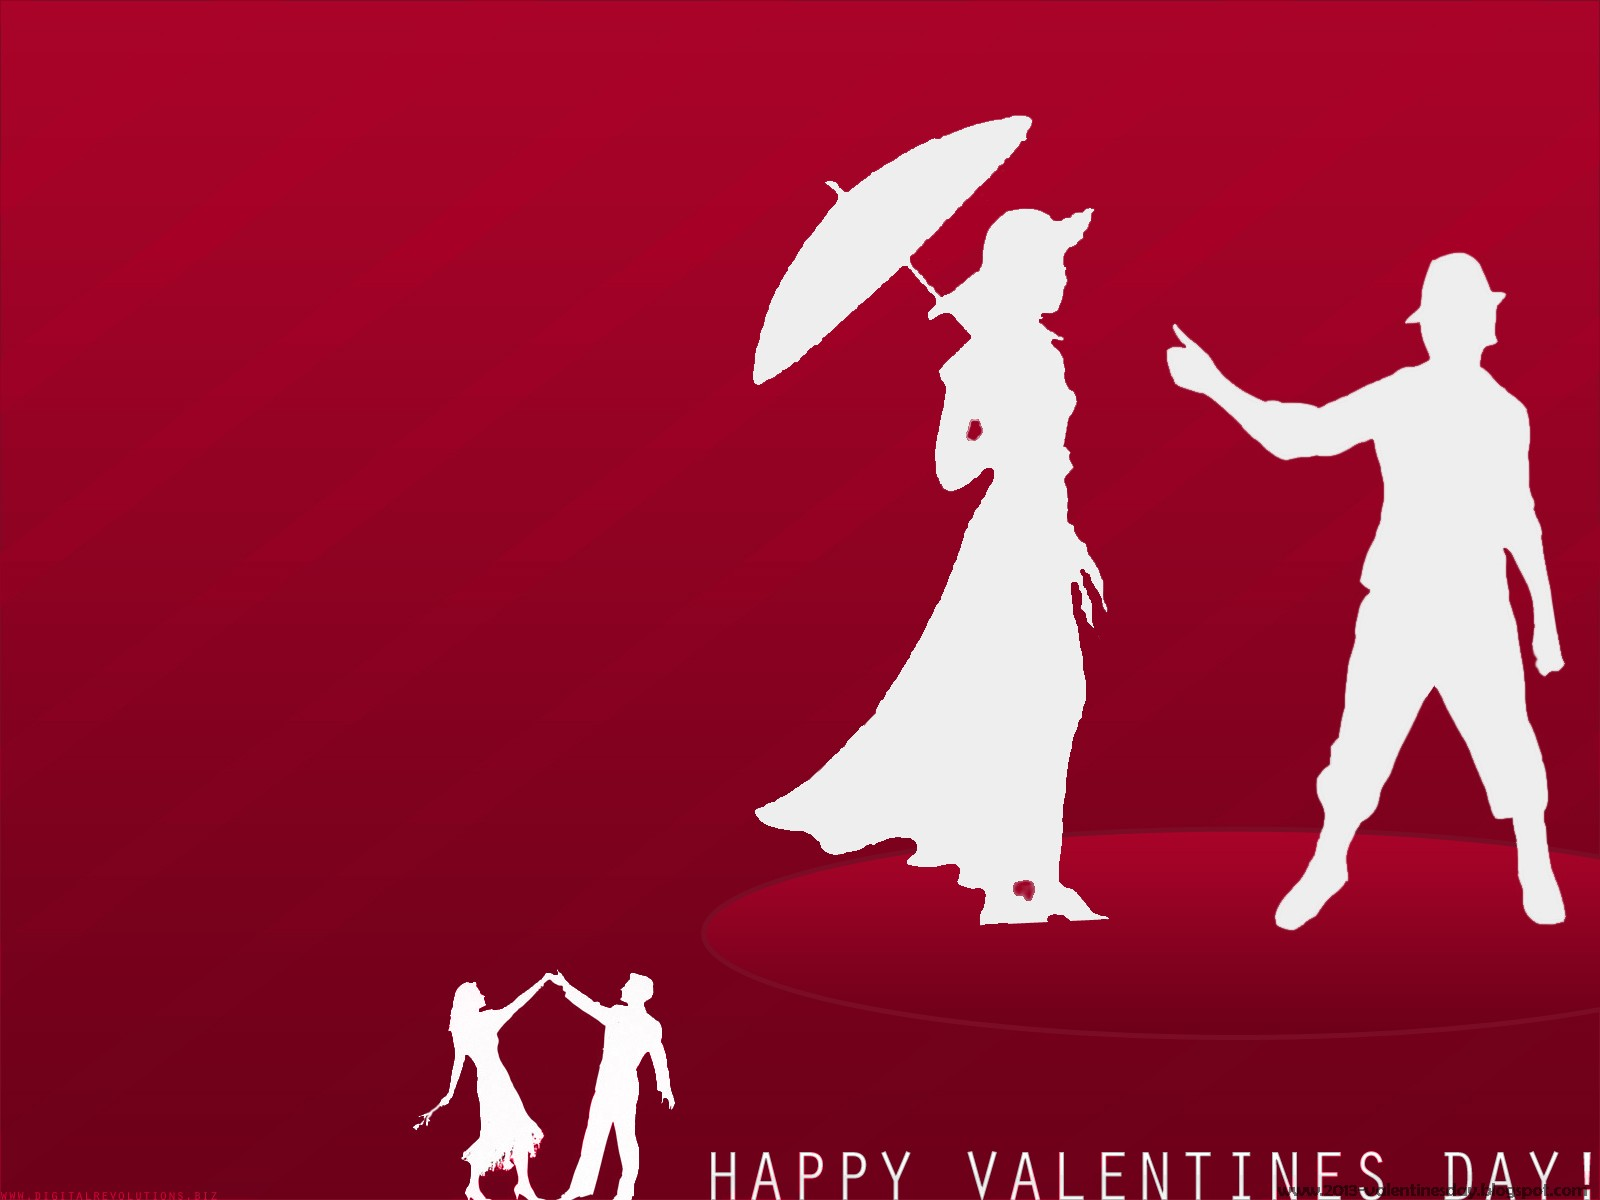 Happy Valentines Day 1920px HD Wallpapers 2013